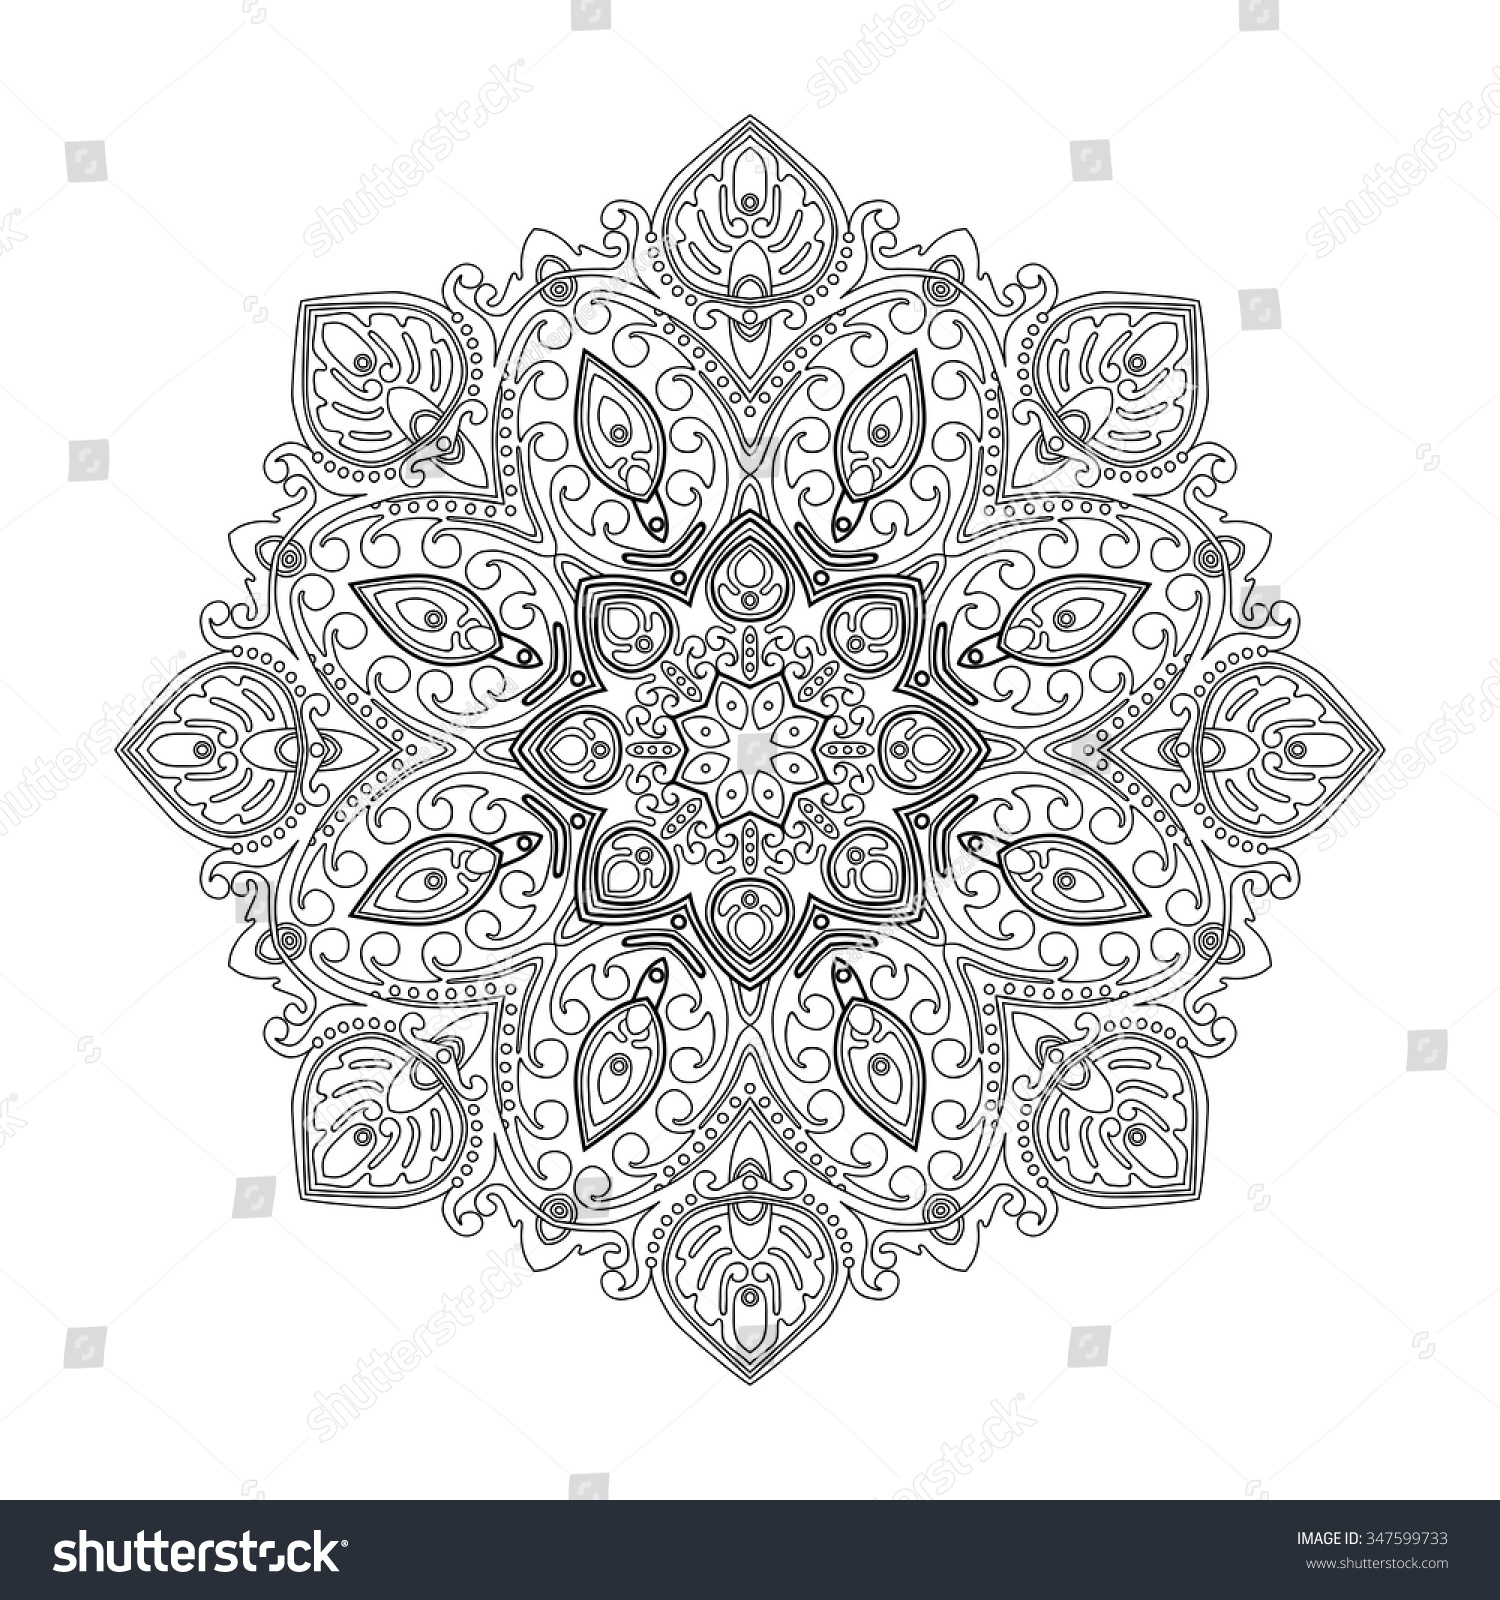 Abstract Circle Coloring Pages : Abstract circle ornament vector graphic design stock